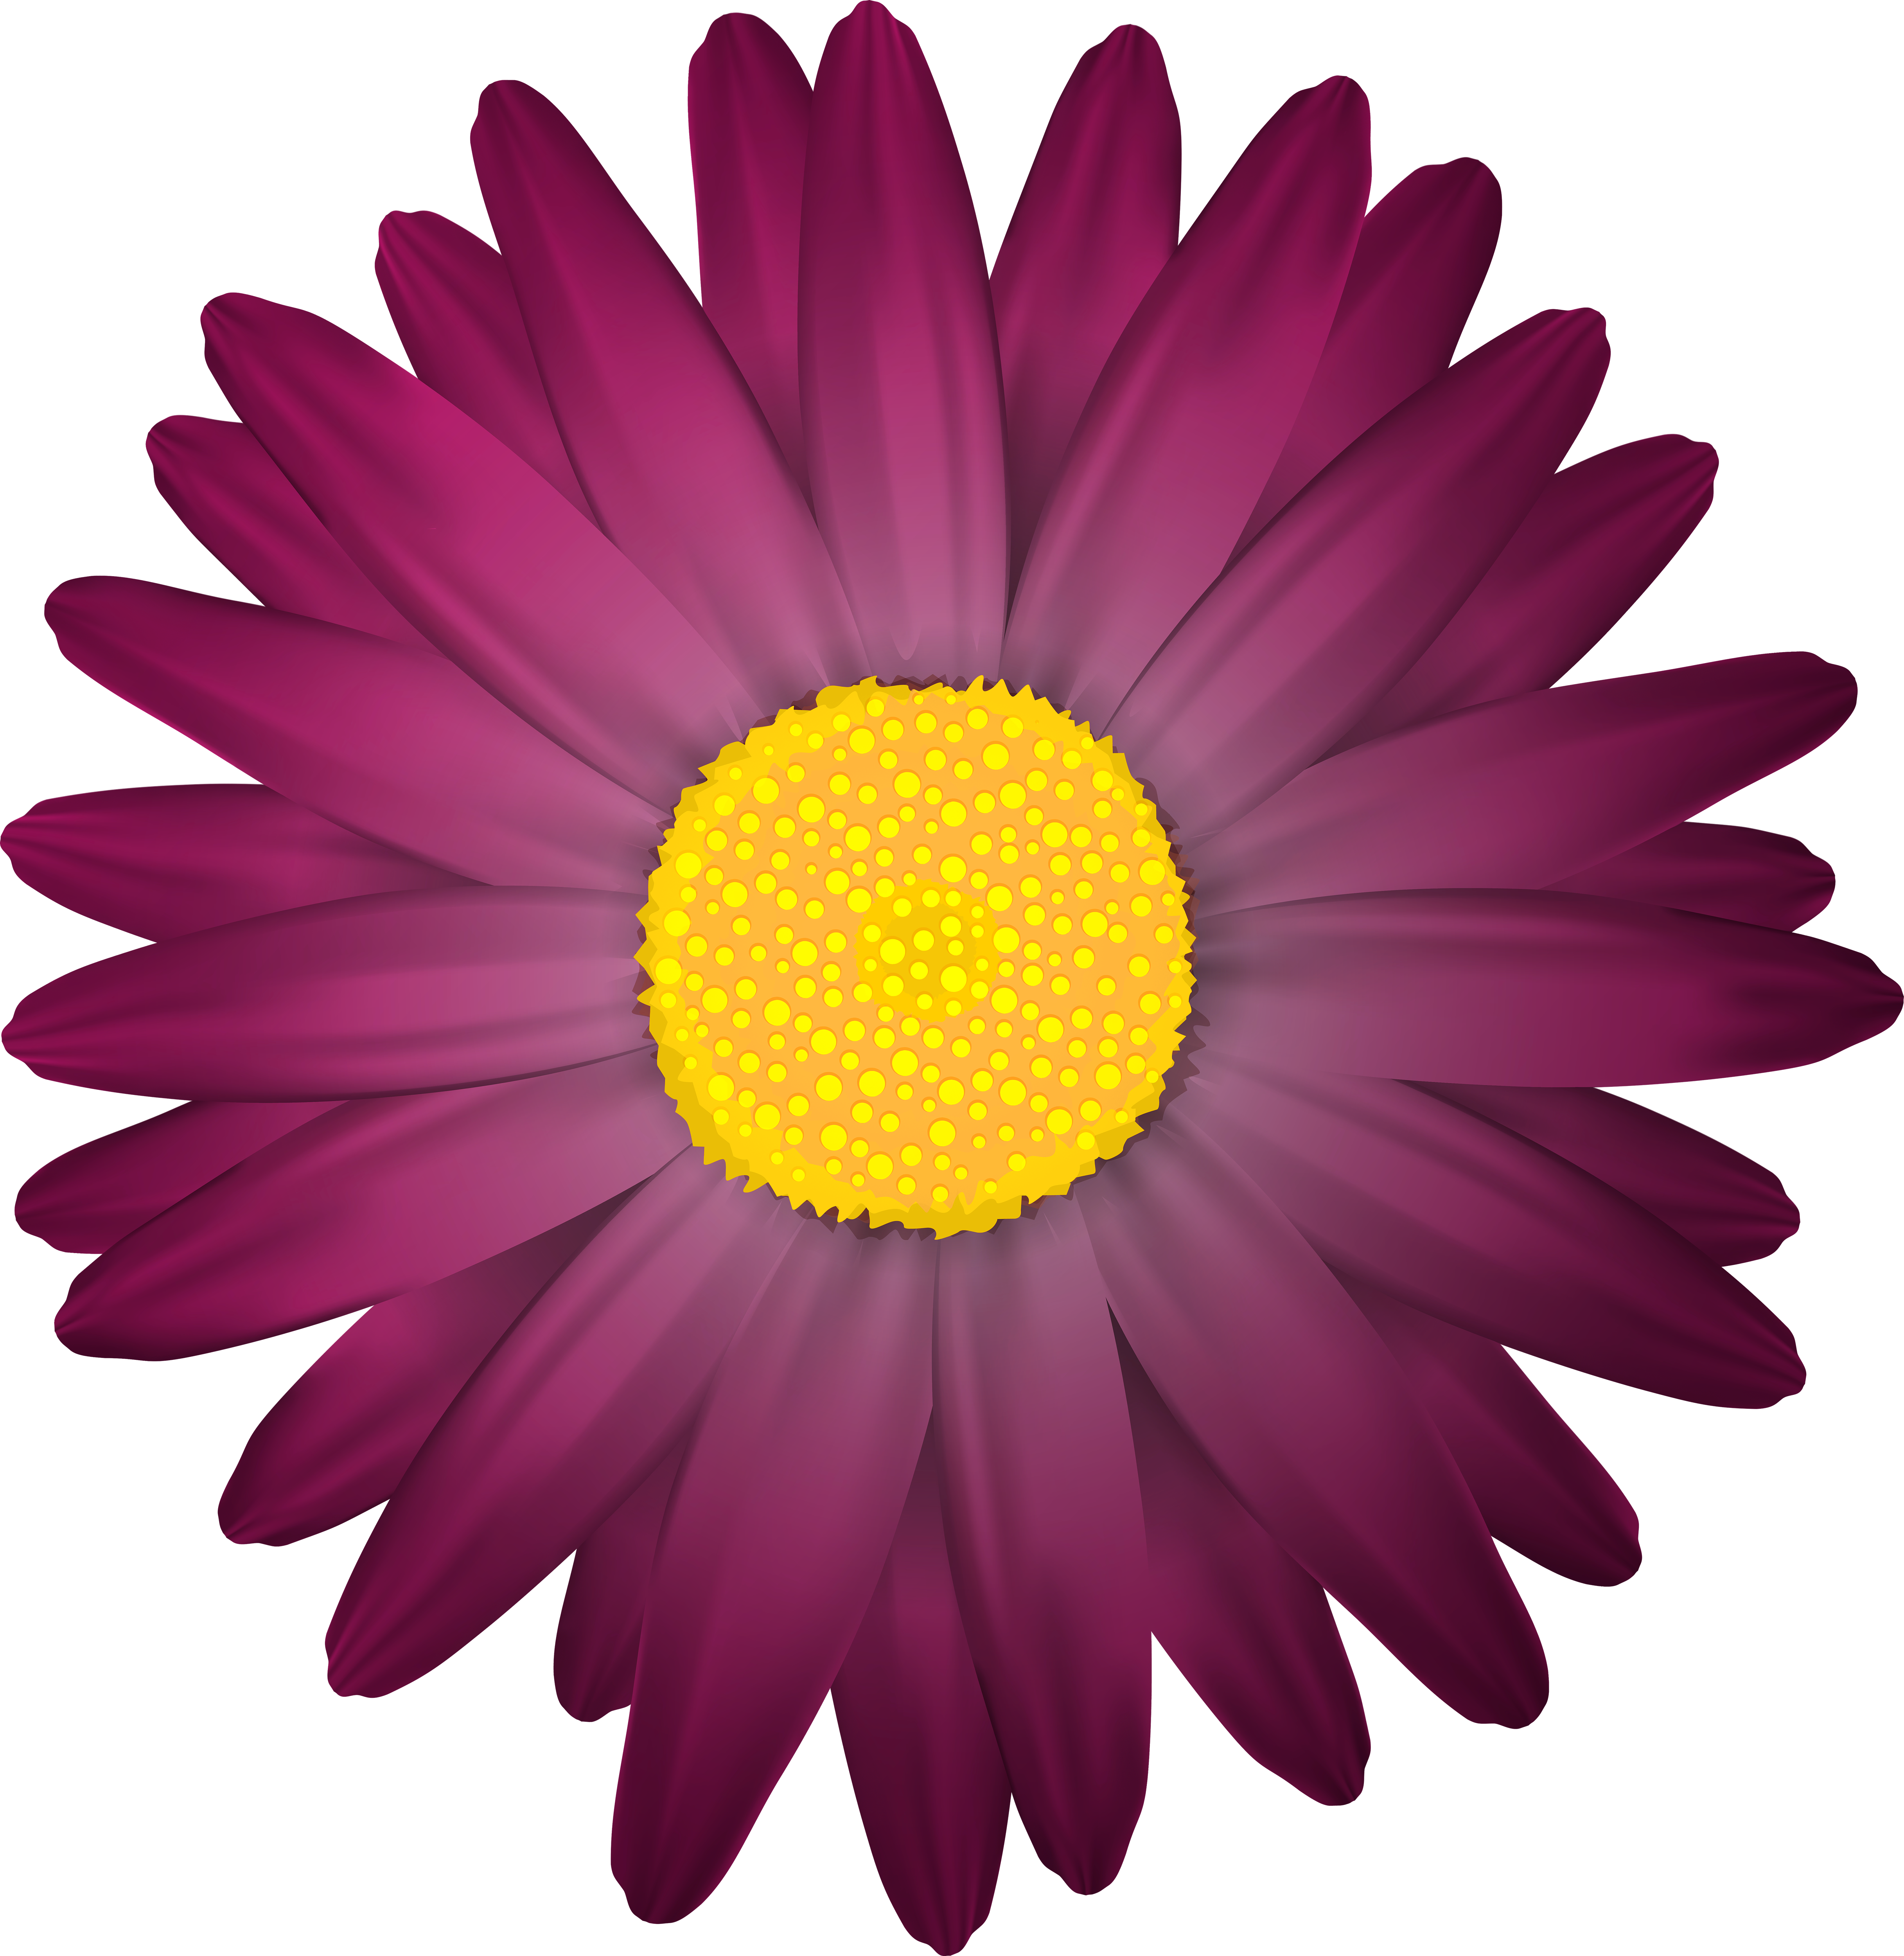 Orange and purple flower clipart clip art royalty free stock Dark Flower Transparent PNG Clip Art Image | Gallery Yopriceville ... clip art royalty free stock